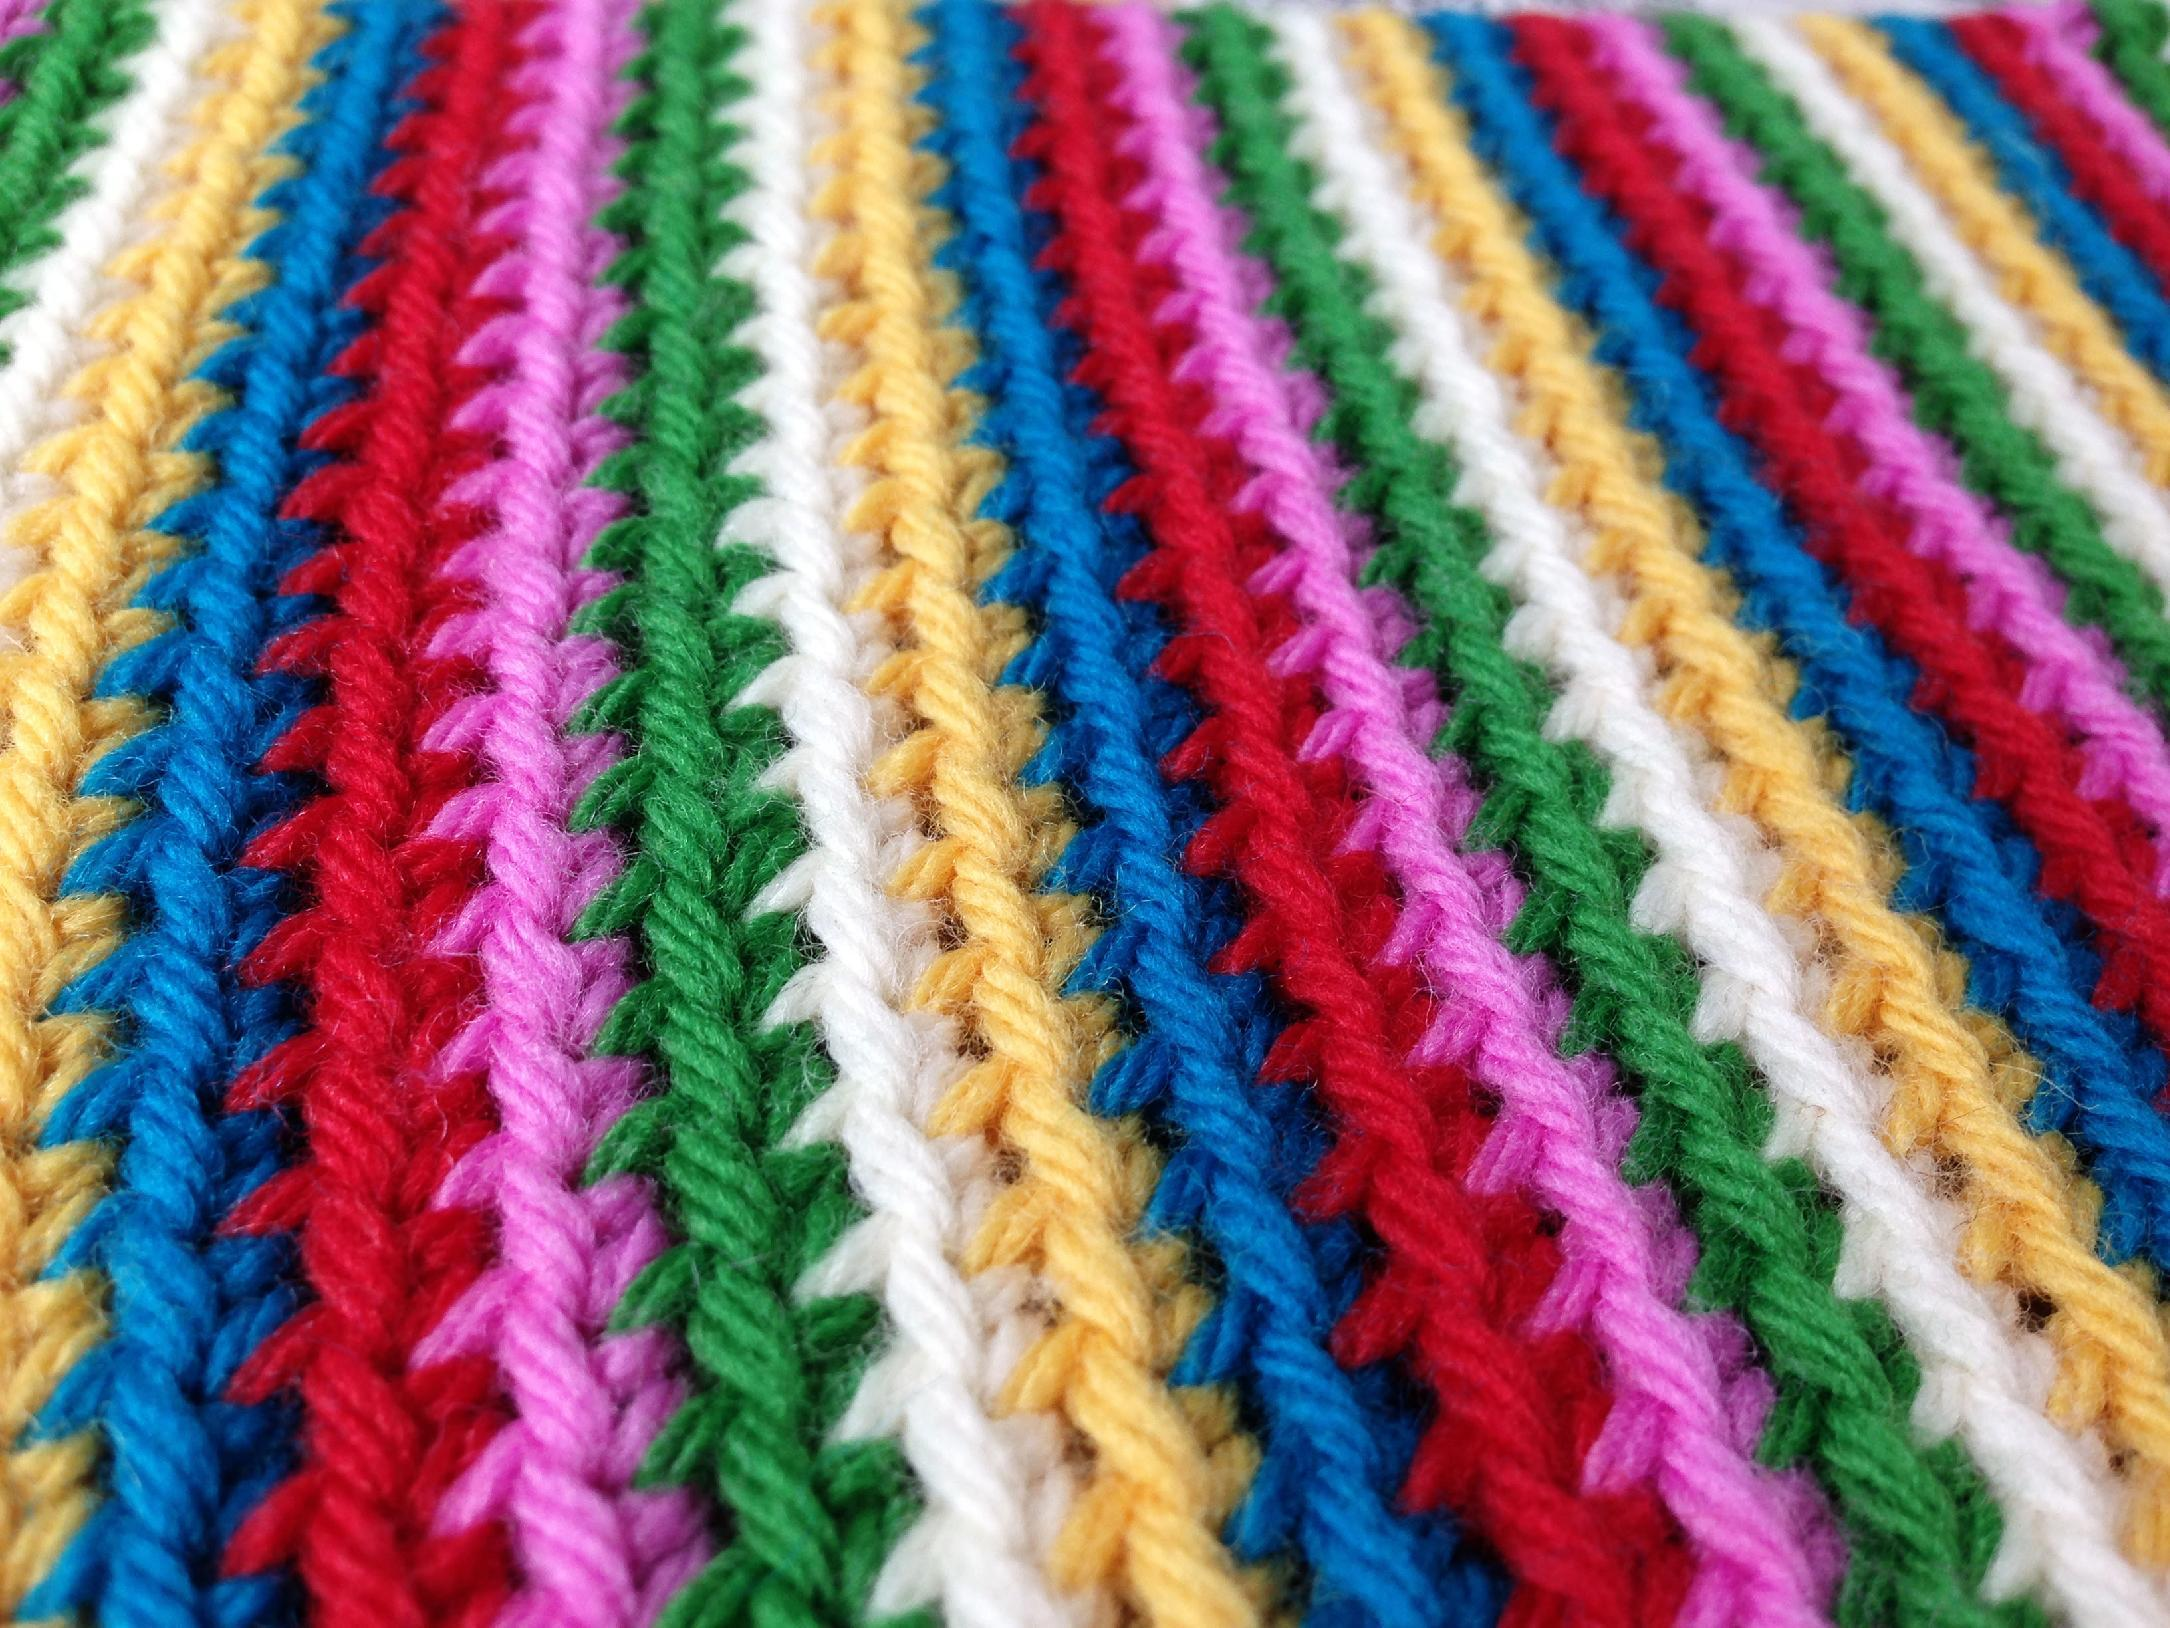 In this handout photo provided by Edie Eckman, rounds of single crochet were worked in the back loops to create colorful stripes. Today's crochet is leaner and trendier than that of the 1960s and '70s, from which we know it for its bulky, acrylic yarns and Afghan blankets. (AP Photo/Edie Eckman, Edie Eckman)